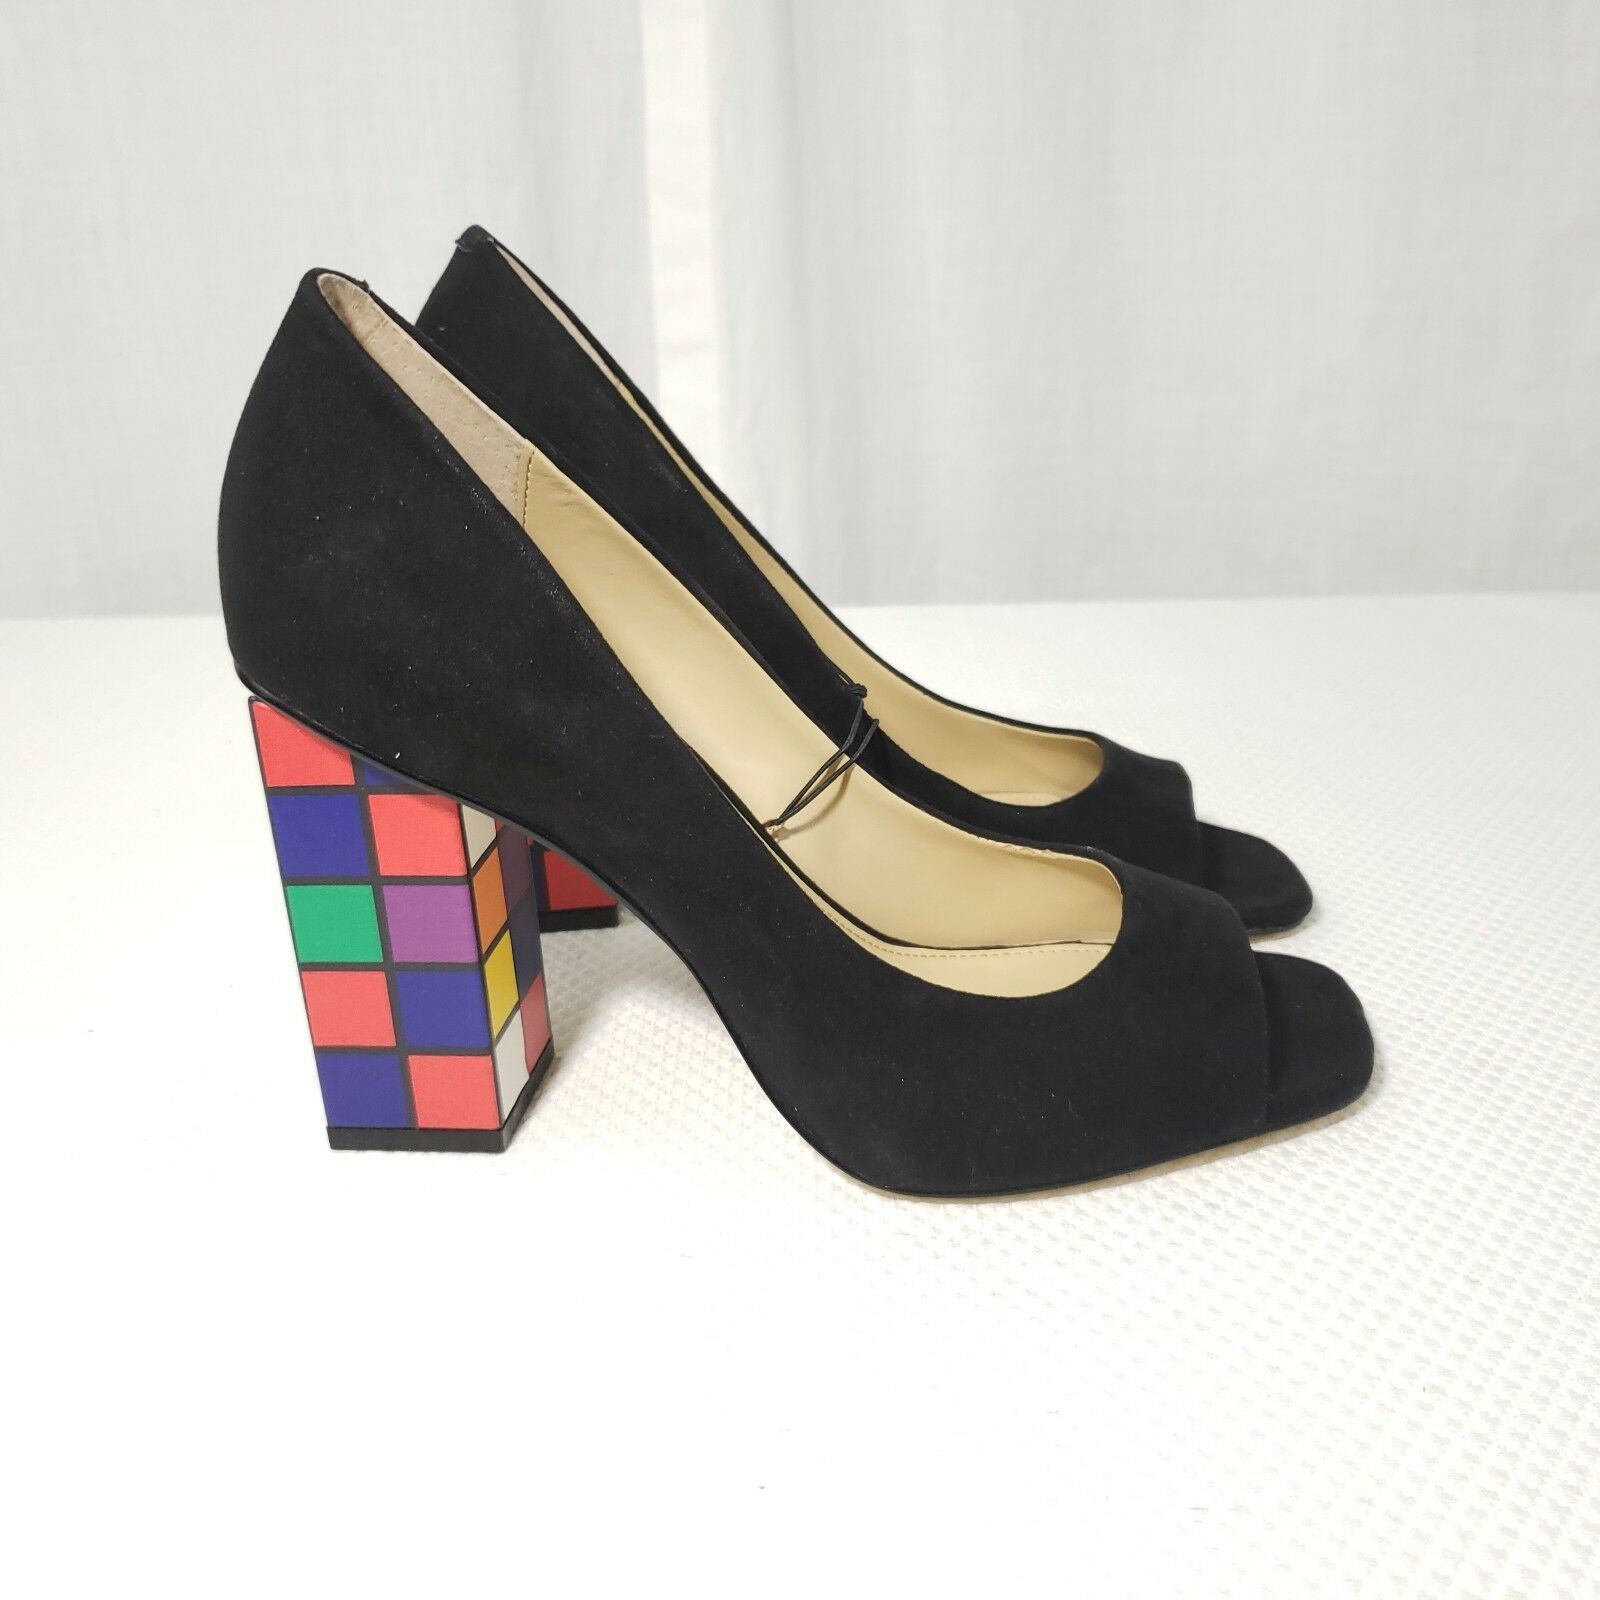 Katy Perry Caitlin 7.5 Peep Rubix Cube Heels Shoes Black Suede Peep 7.5 Toe Pumps a422cd